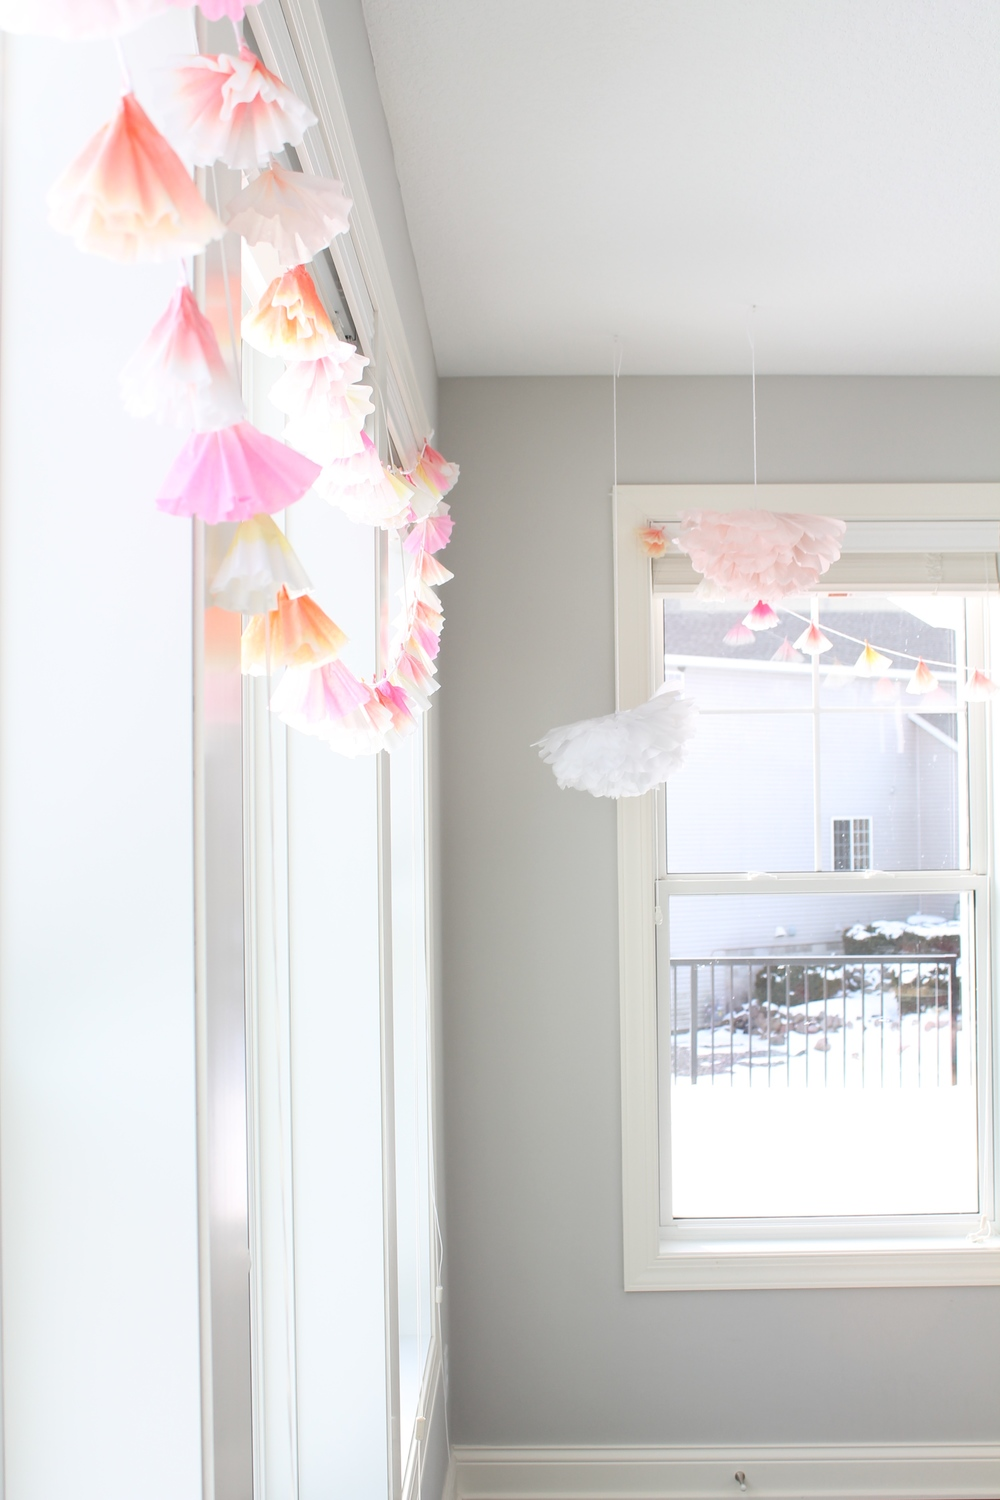 Coffee Filter garland and giant tissue paper flowers for the perfect garden tea party.